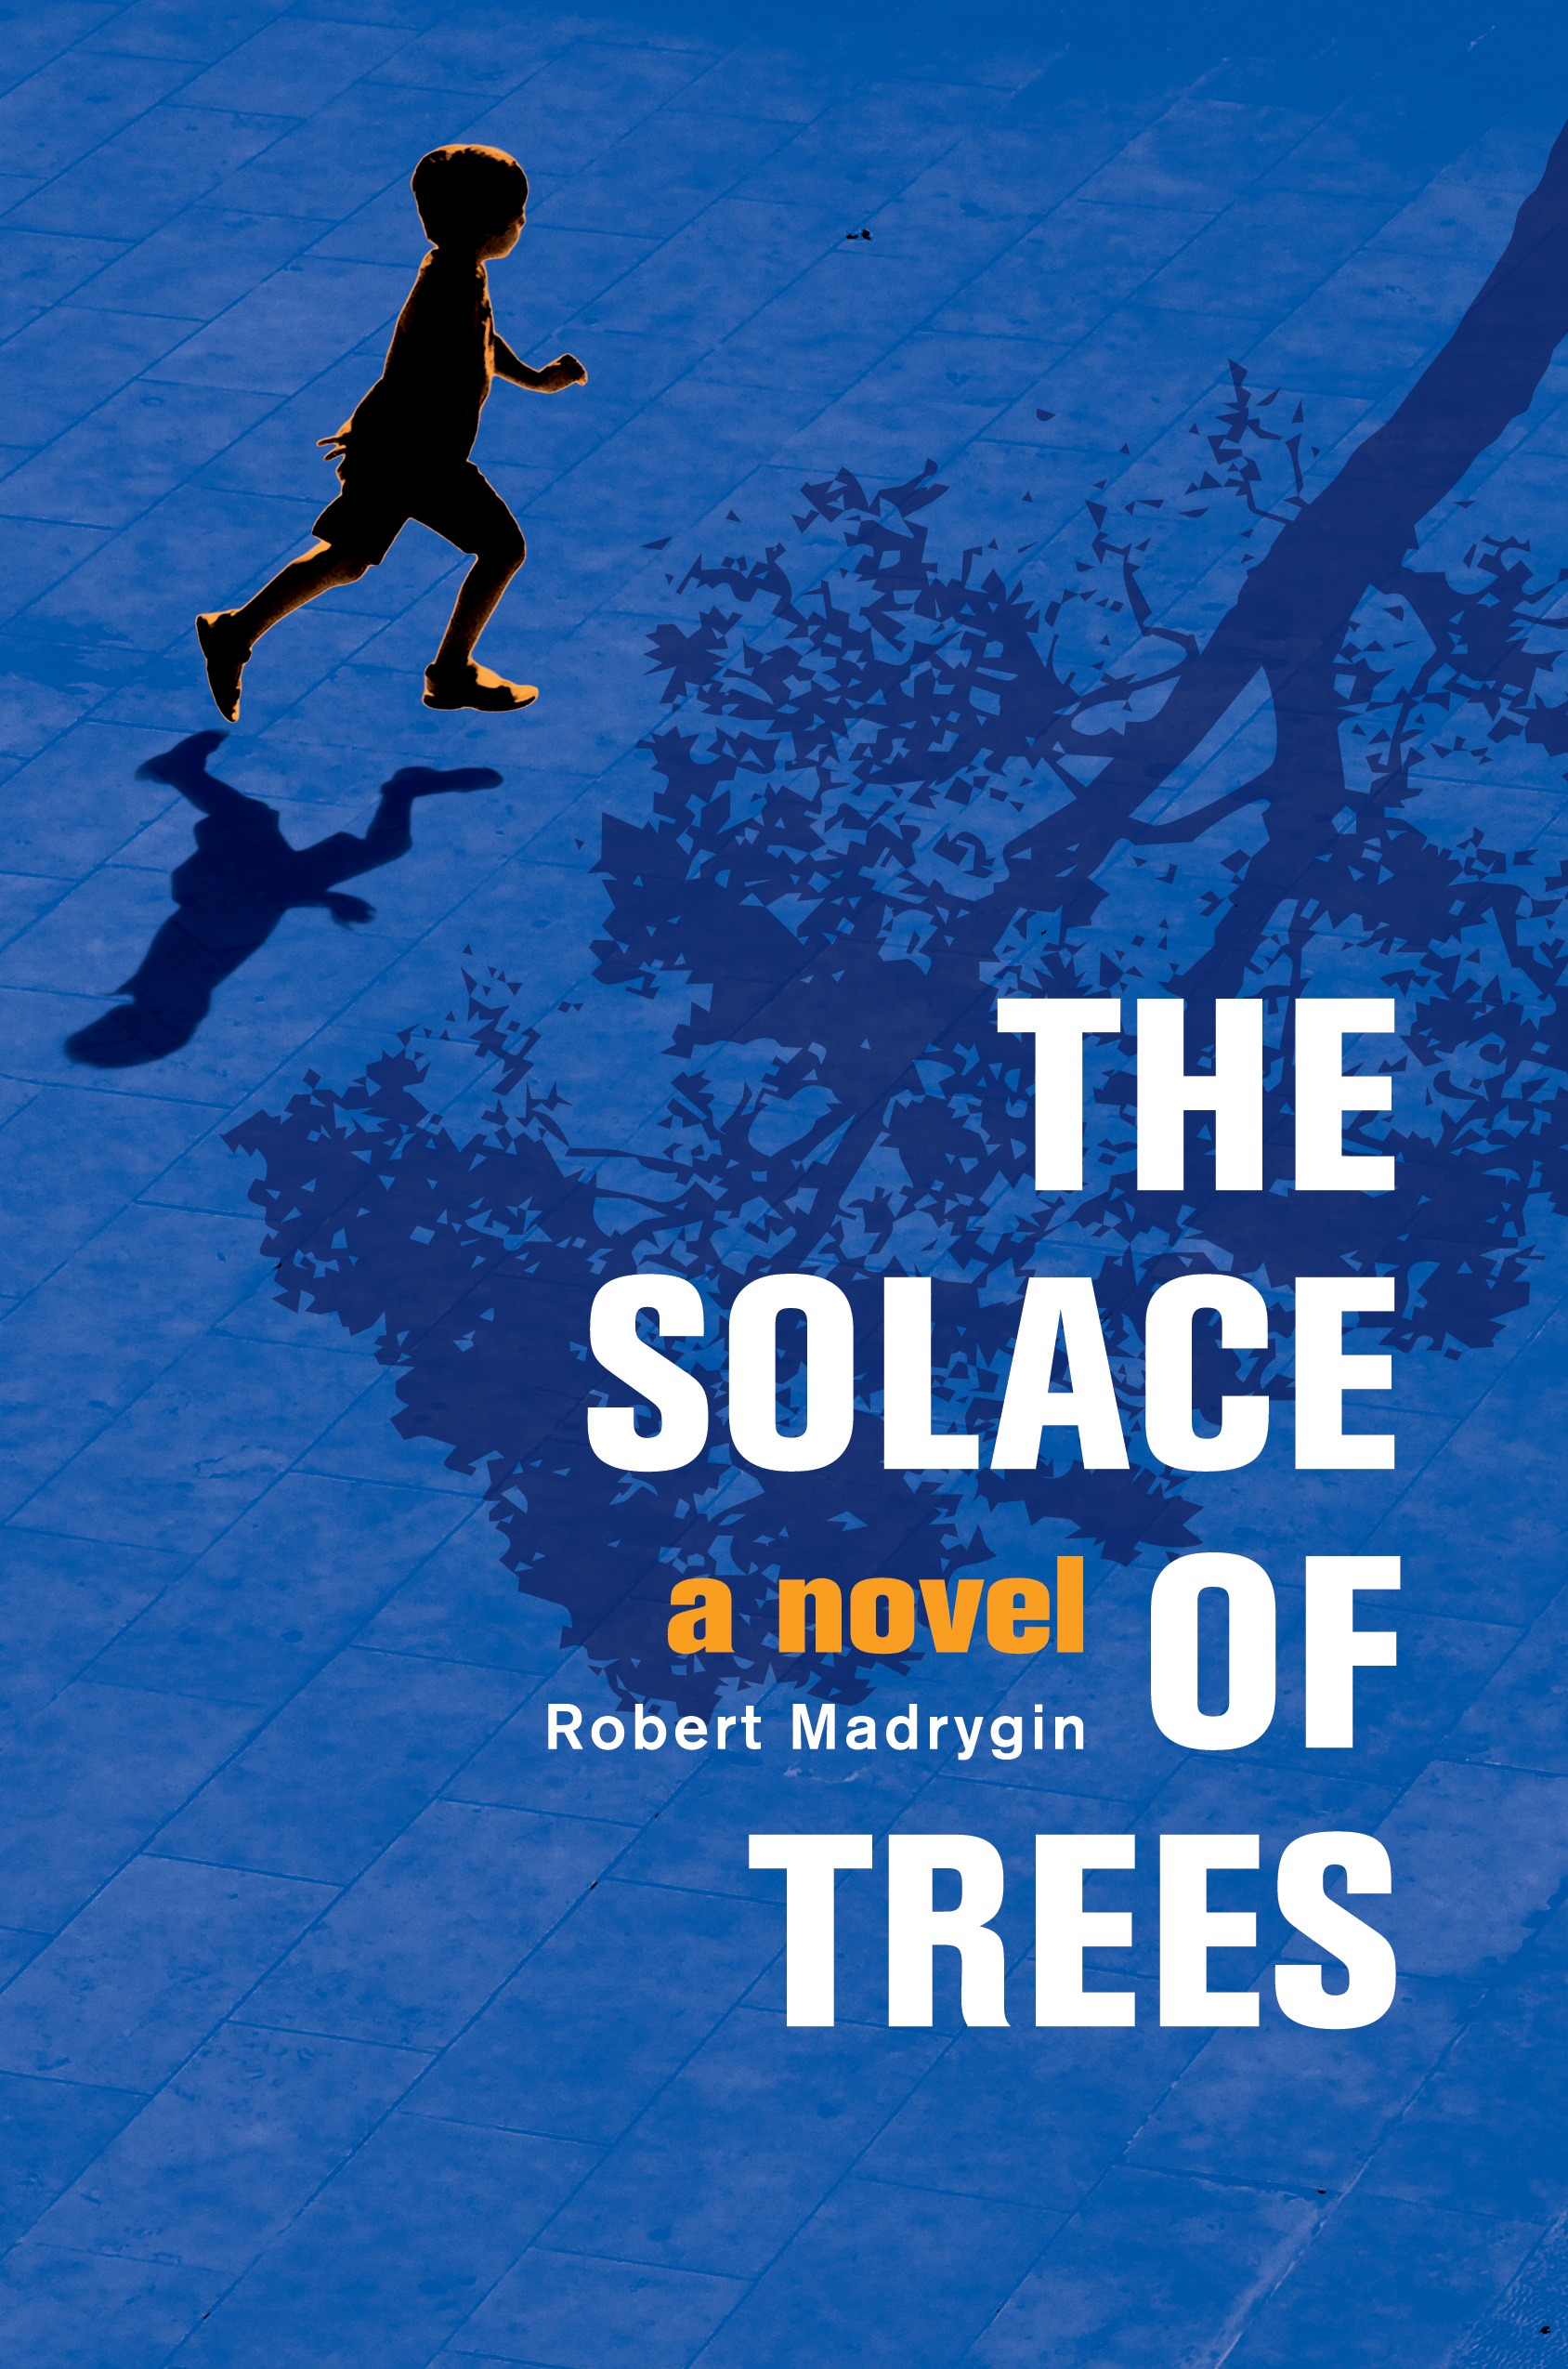 thesolaceoftrees